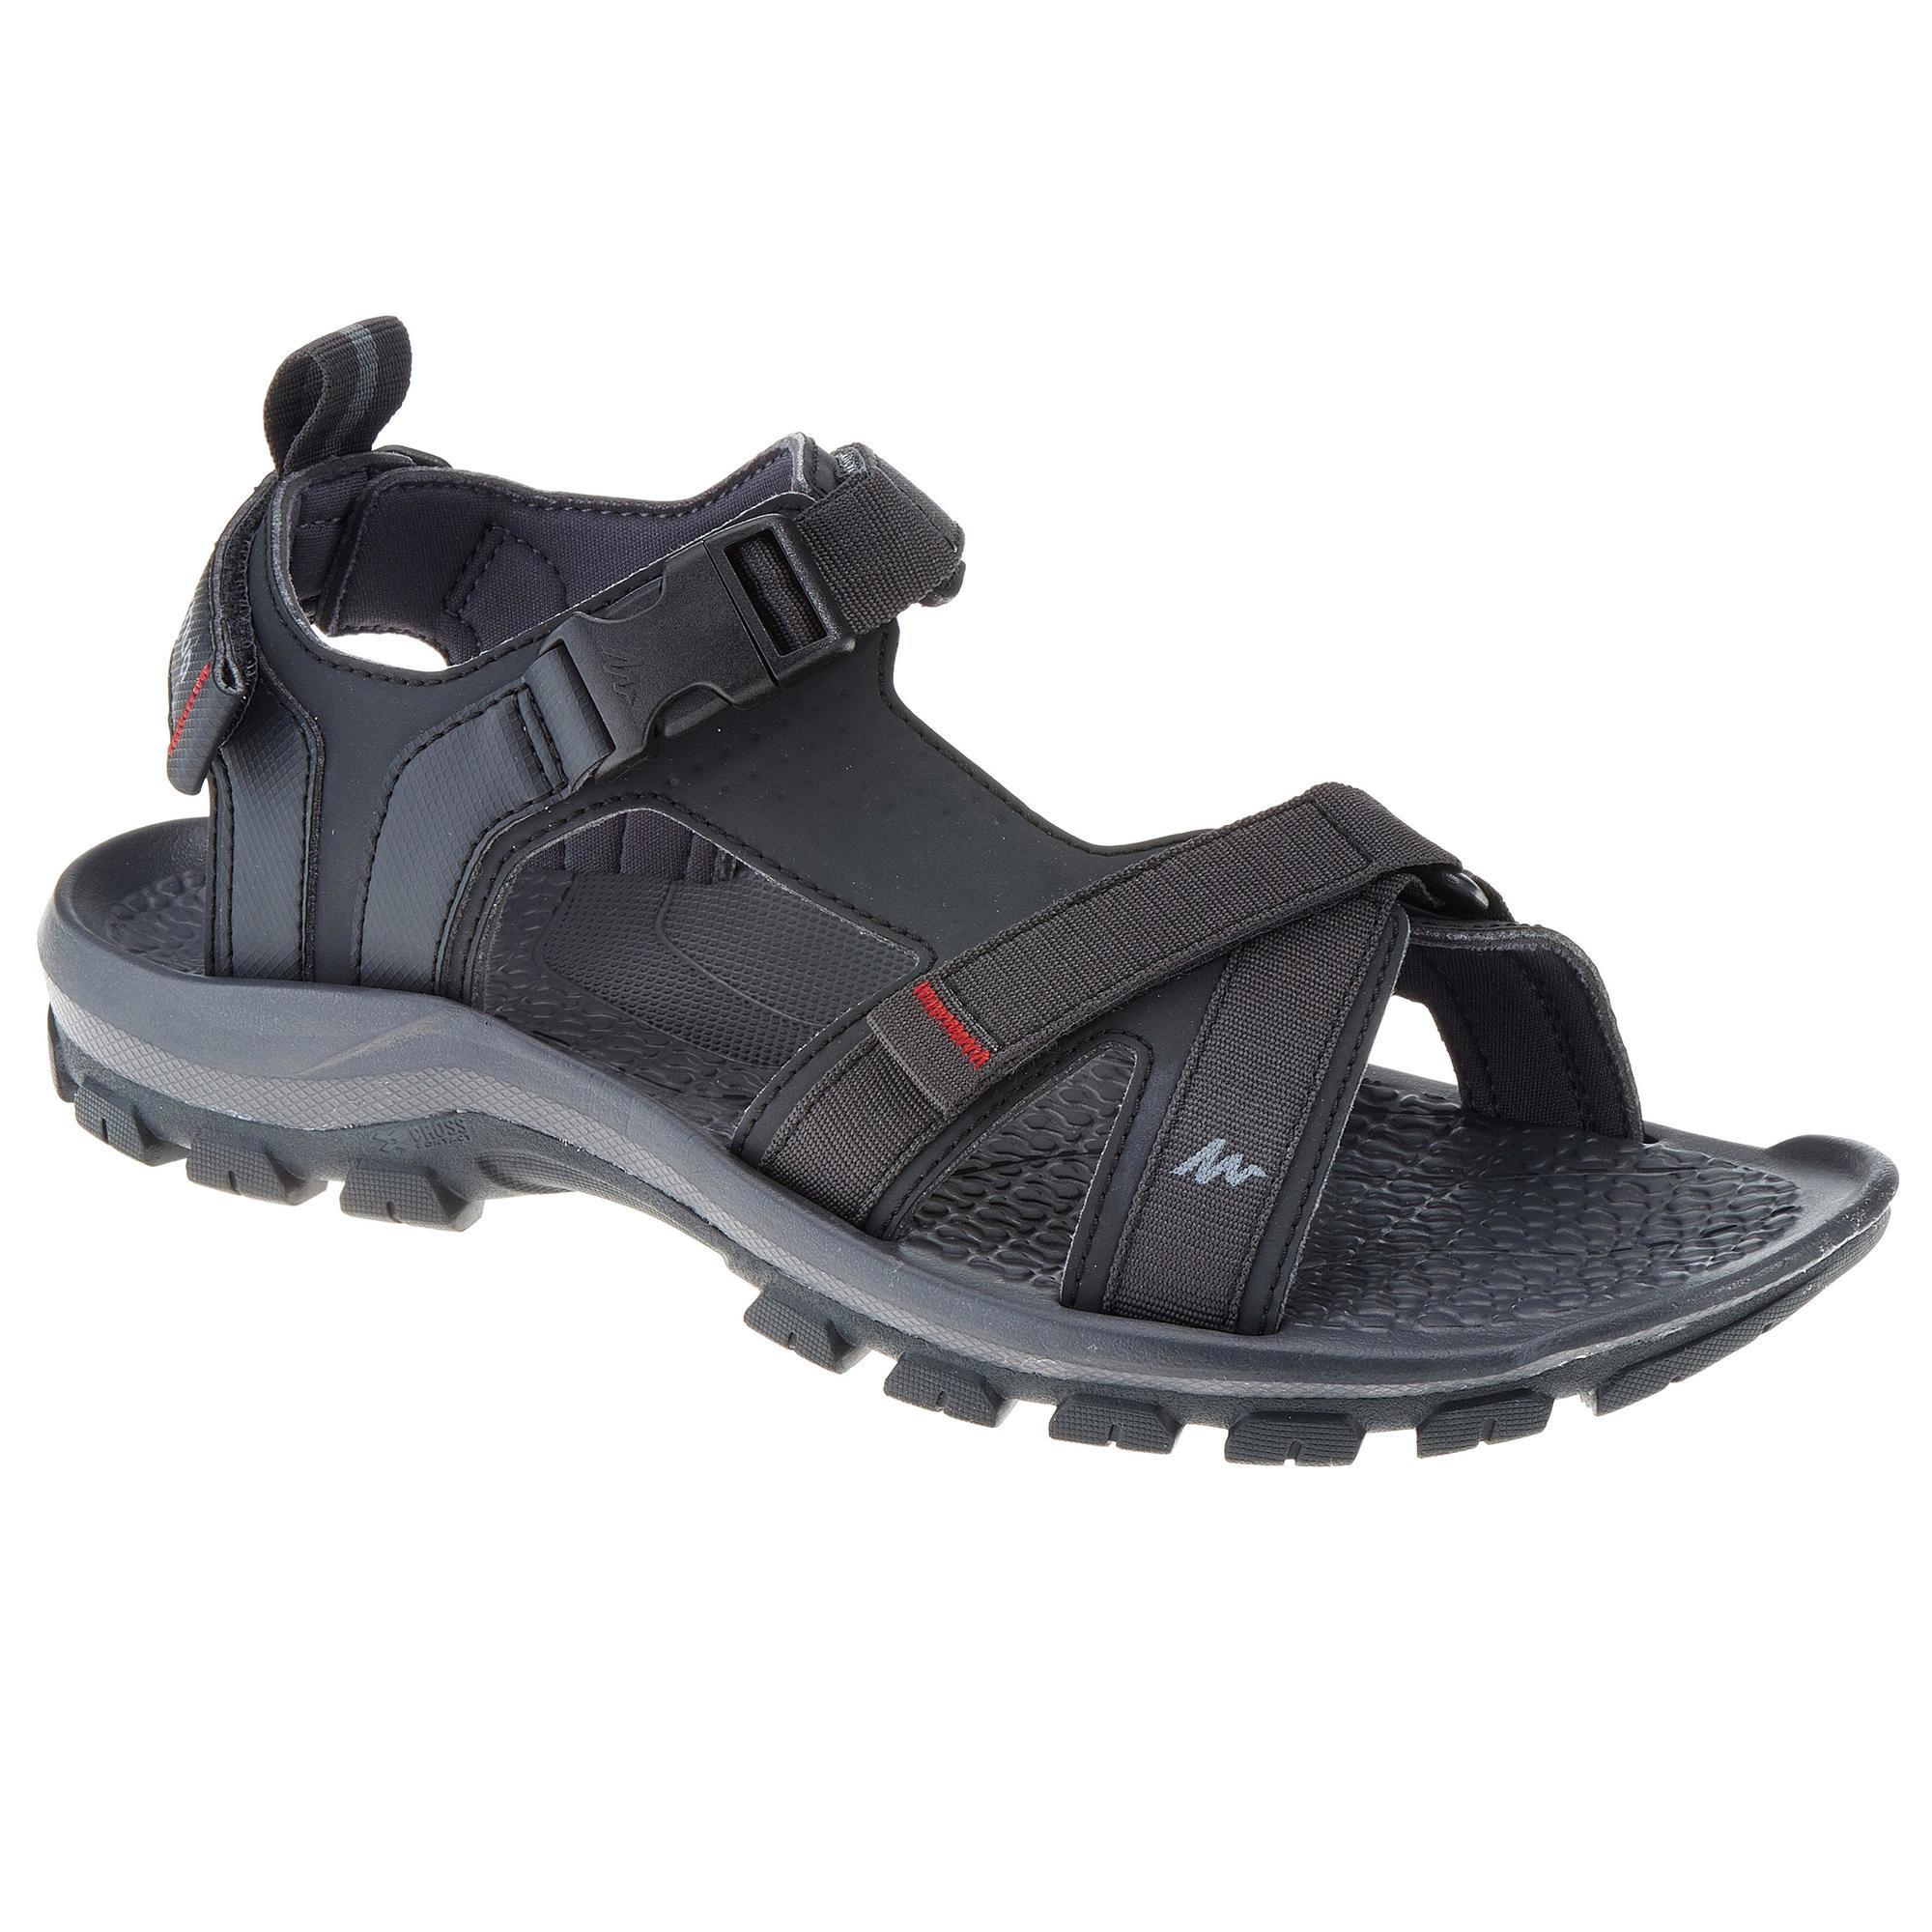 Men S Arpenaz 100 Hiking Sandals Black Quechua